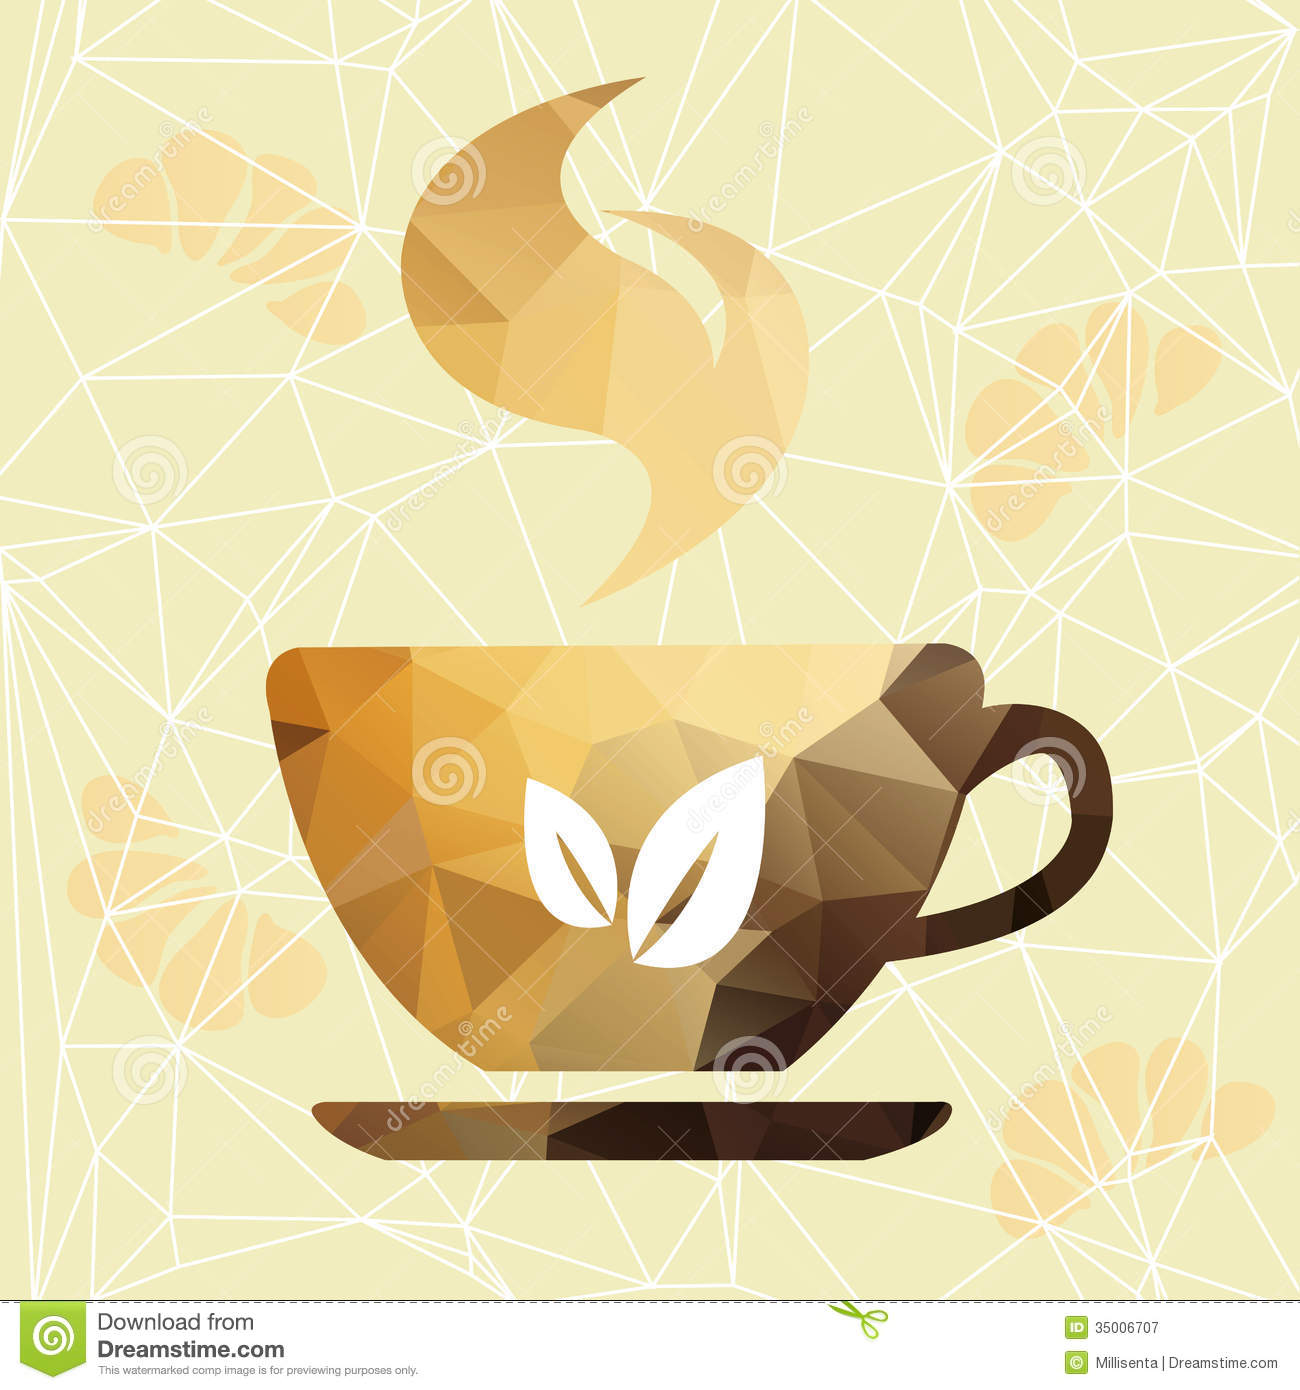 Abstract Cup Of Coffee On A Geometric Background. Royalty